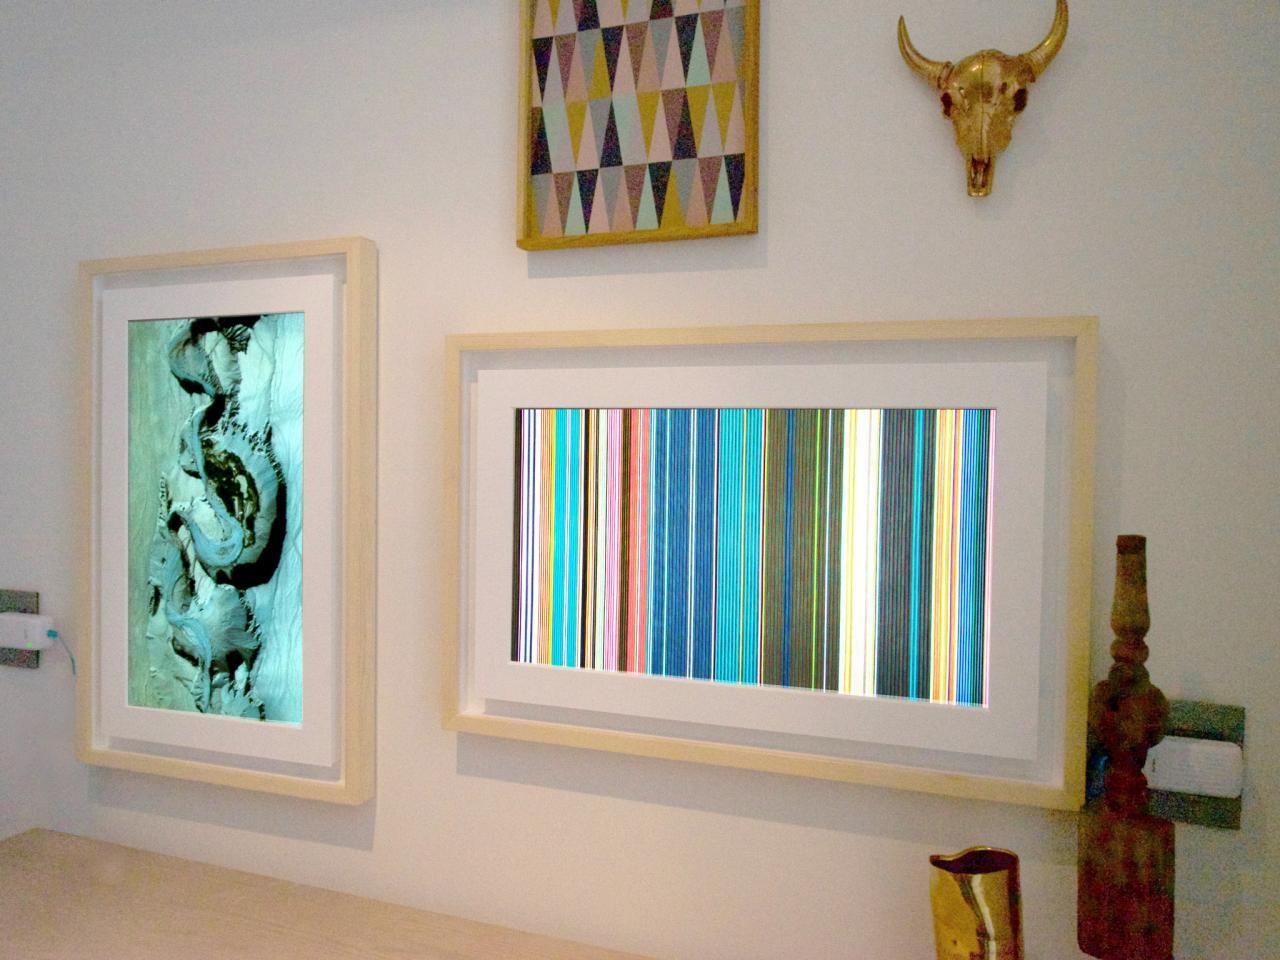 Digital Picture Frames Have Grown Up Into Wall Art | Hgtv Smart With Regard To Wall Art Frames (Image 9 of 20)